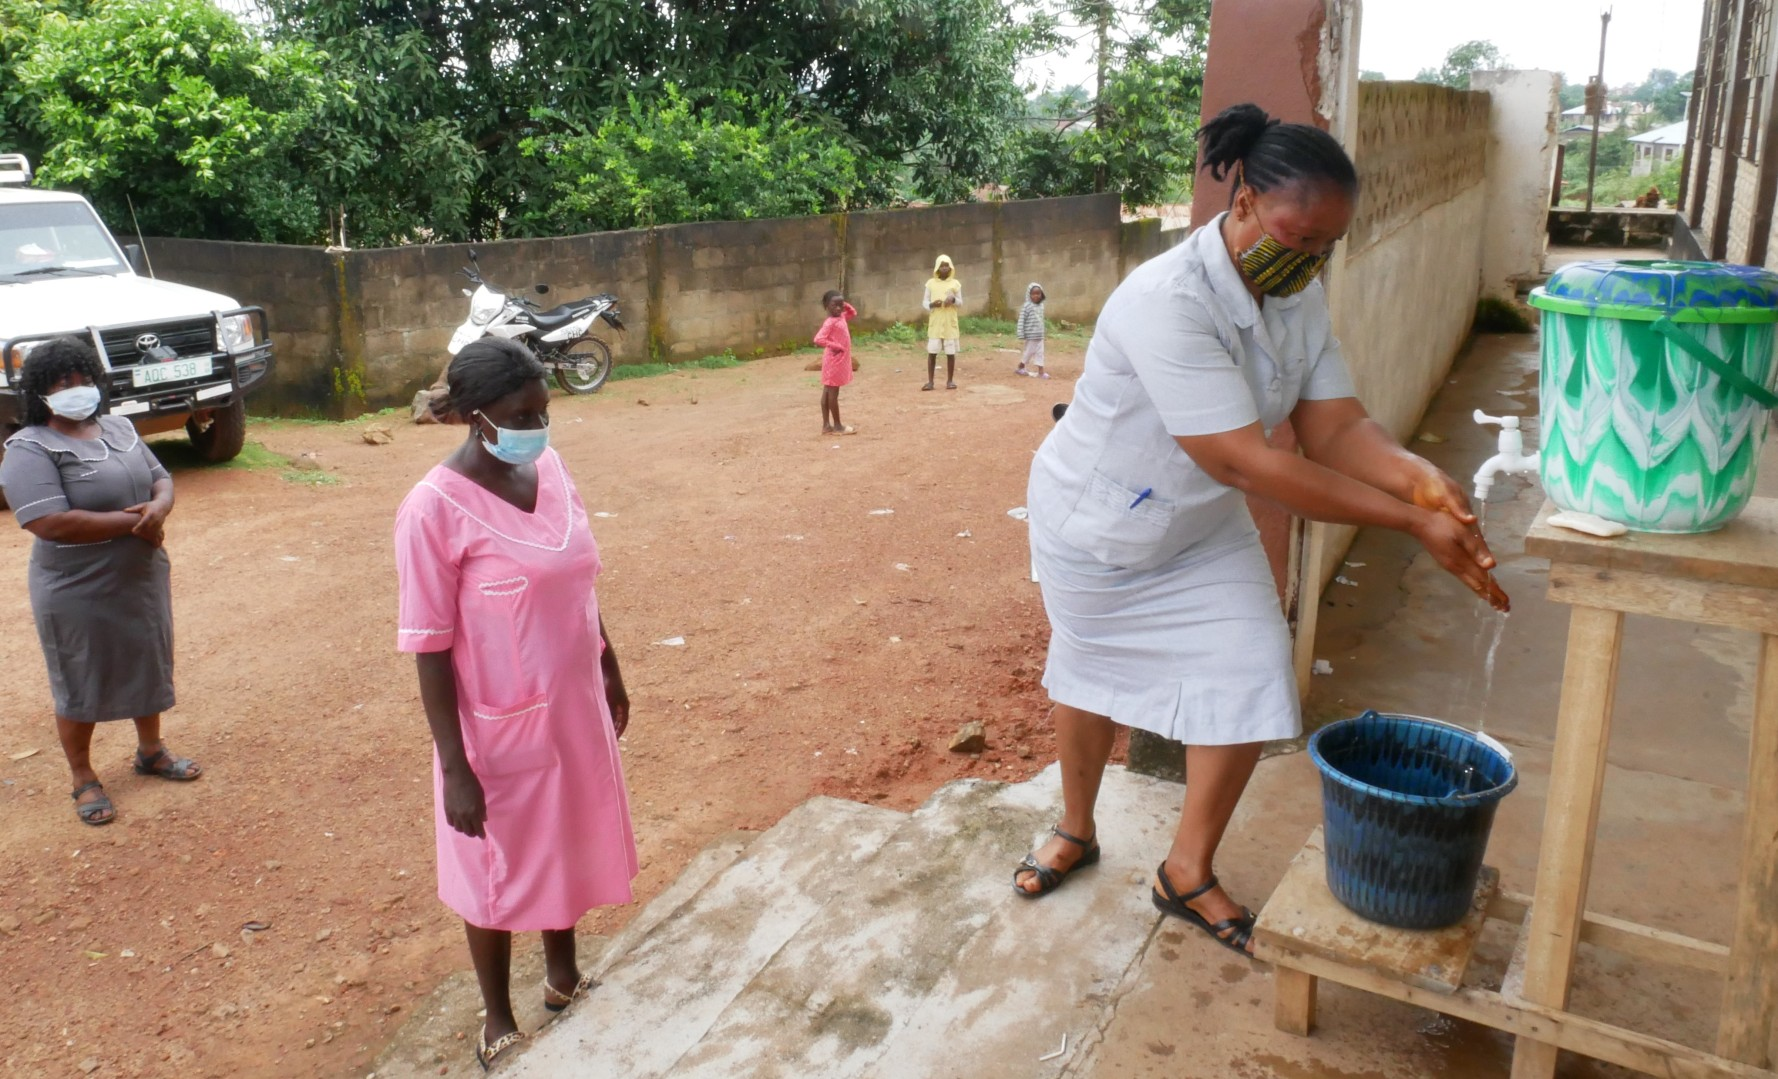 A health worker demonstrates how to use a handwashing station.